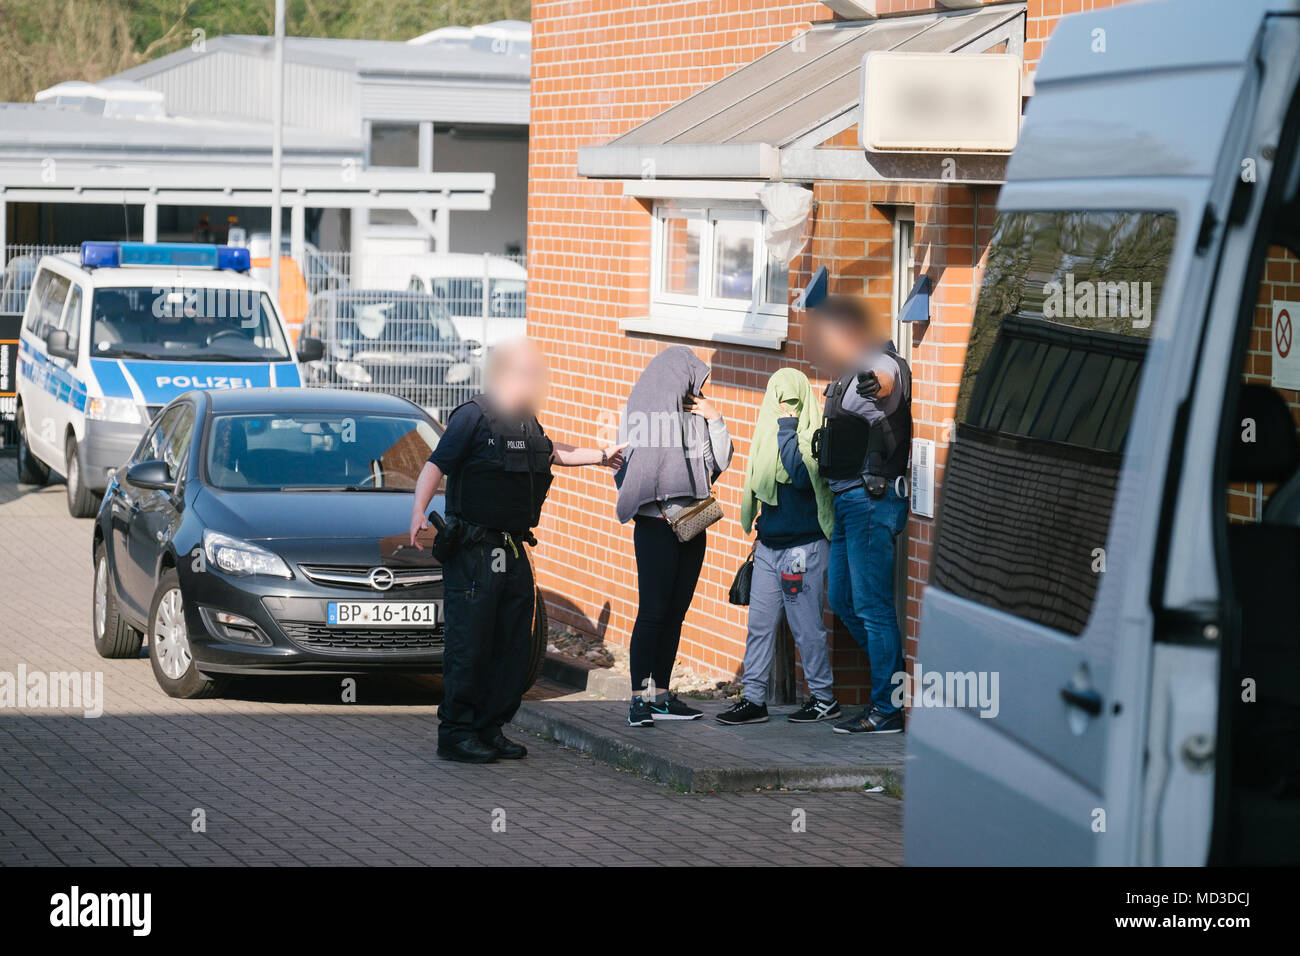 18 April 2018, Rastatt, Hanover: Police forces leading five women from a house in the district of Anderten. The police is cracking down on organized crime in a large-scale, nationwide raid starting Wednesday morning. According to the German police in Stuttgart, the focus lies on forged visas, human trafficking, pimping, and forced prostitution of Thai women. (Faces are blurred for legal reasons) Photo: Ole Spata/dpa Stock Photo